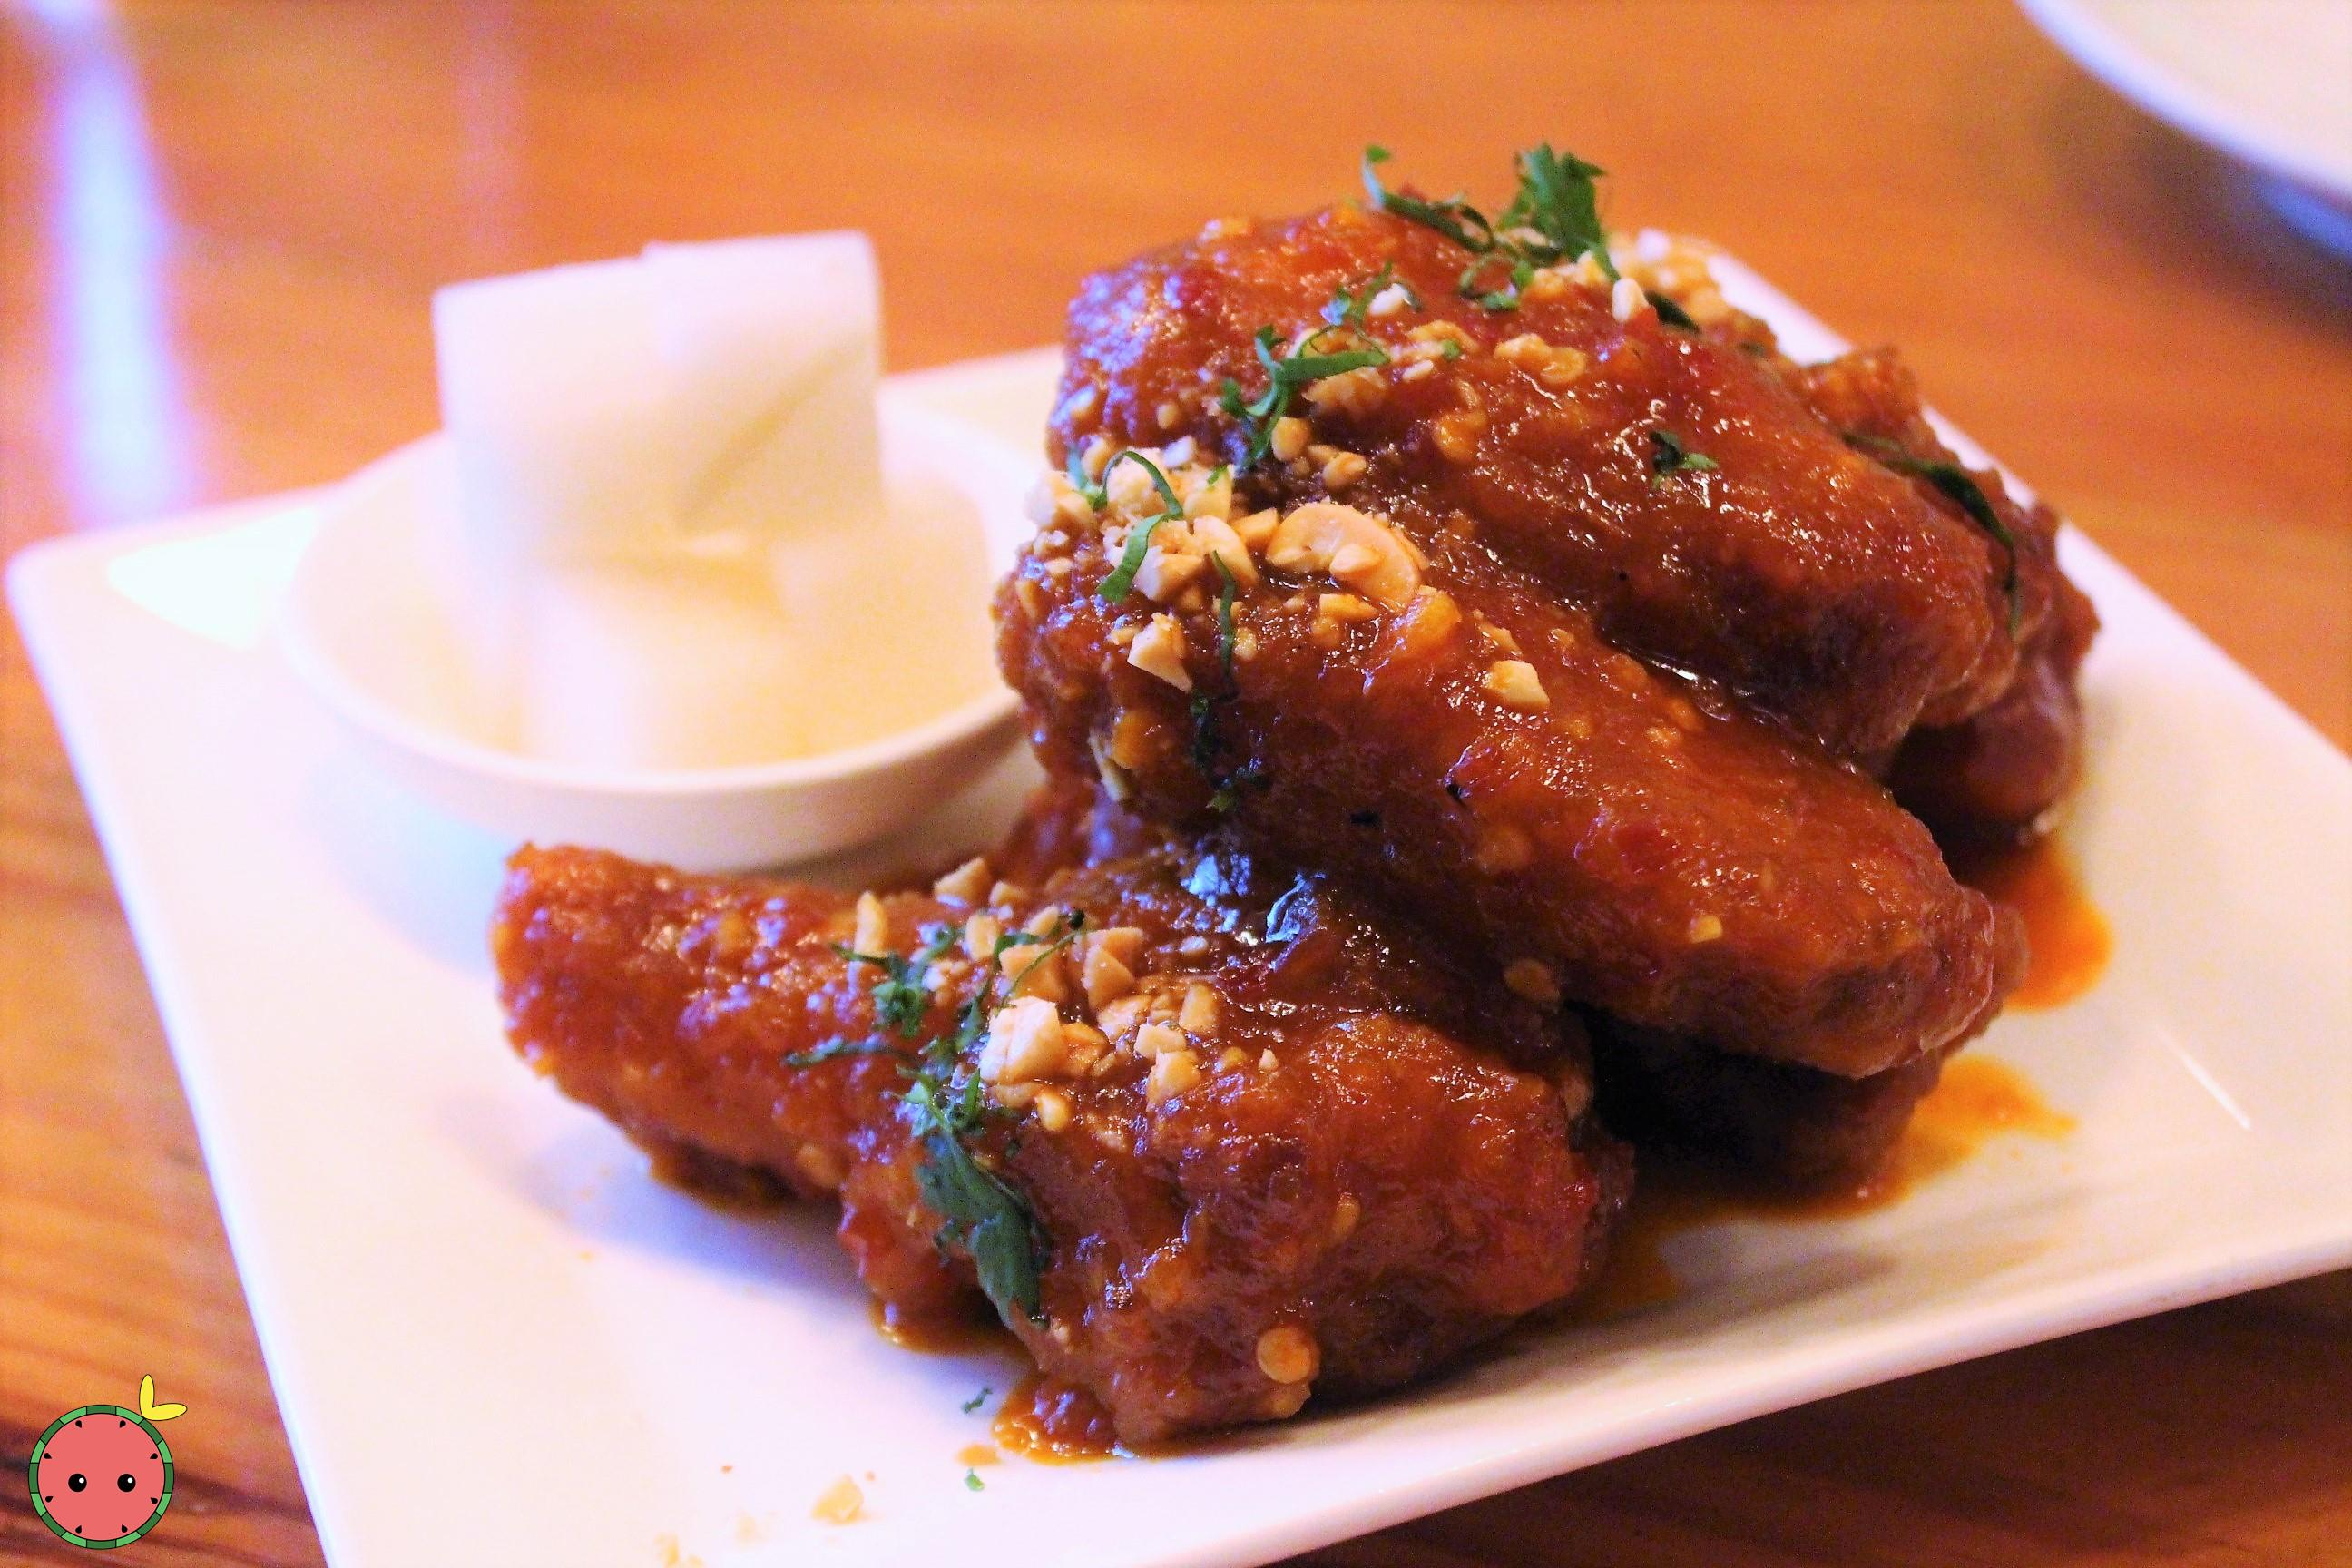 Spicy_'K.F.C.'_Korean_Fire_Chicken_Wings_-_D'artagnan_organic_chicken,_peanuts,_cilantro_&_pickled_d